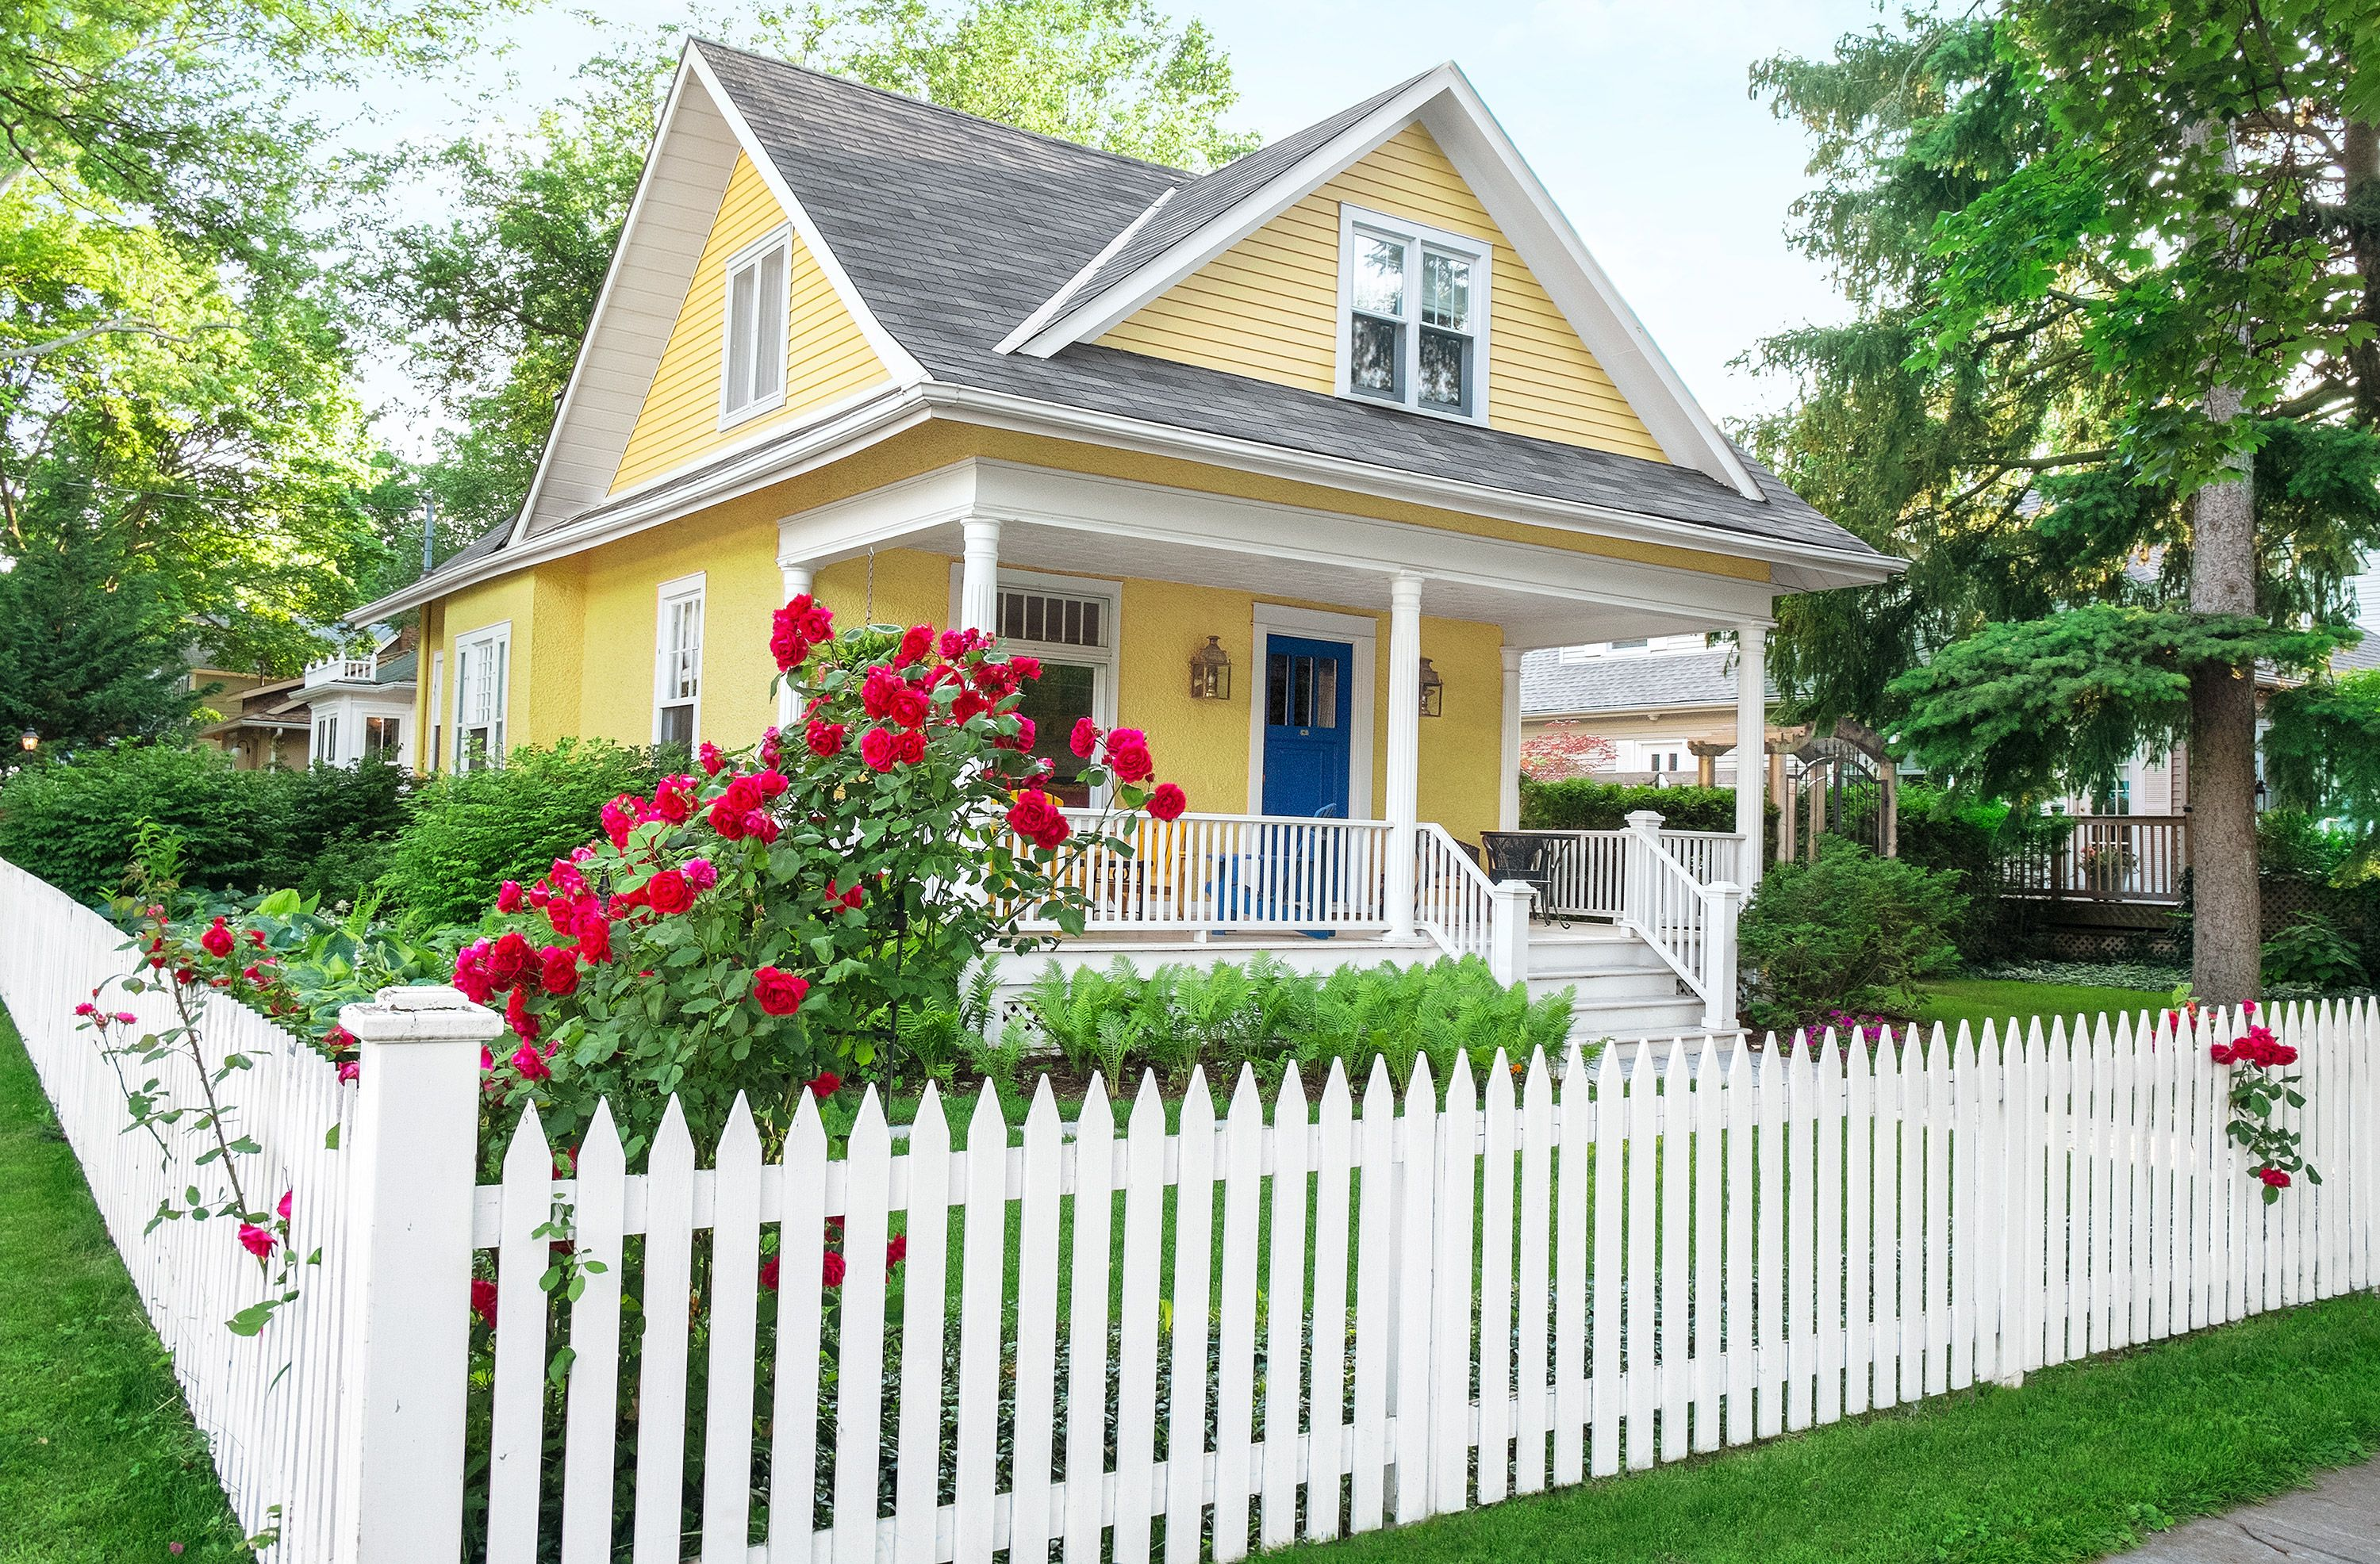 Living The American Dream With A White Picket Fence Farmhouse Landscaping Backyard Fences Front Yard Landscaping Design